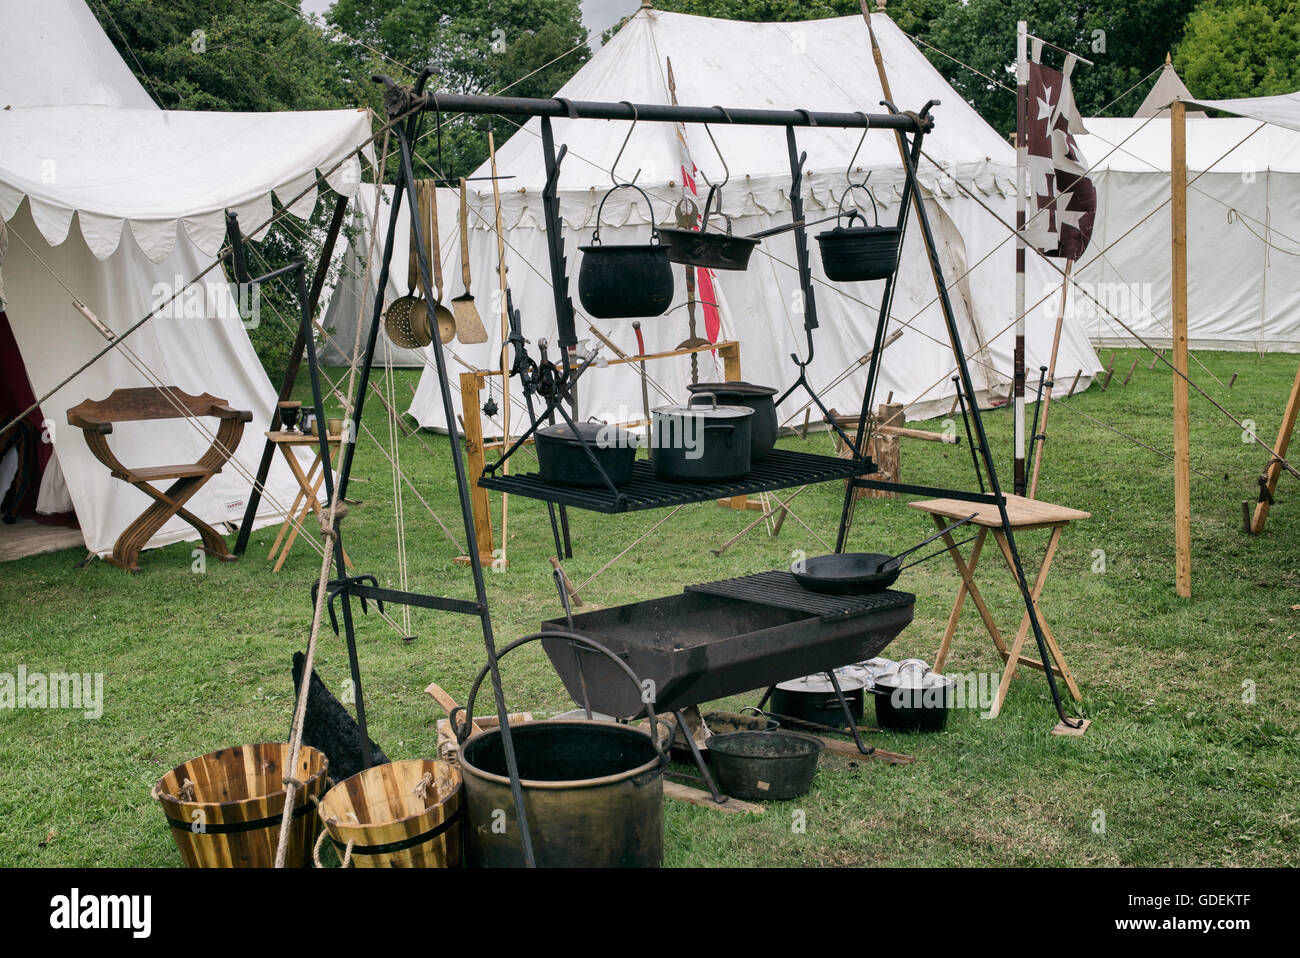 Outside kitchen and enc&ment at the Tewkesbury medieval festival 2016 Gloucestershire England. Vintage filter applied & Outside kitchen and encampment at the Tewkesbury medieval festival ...